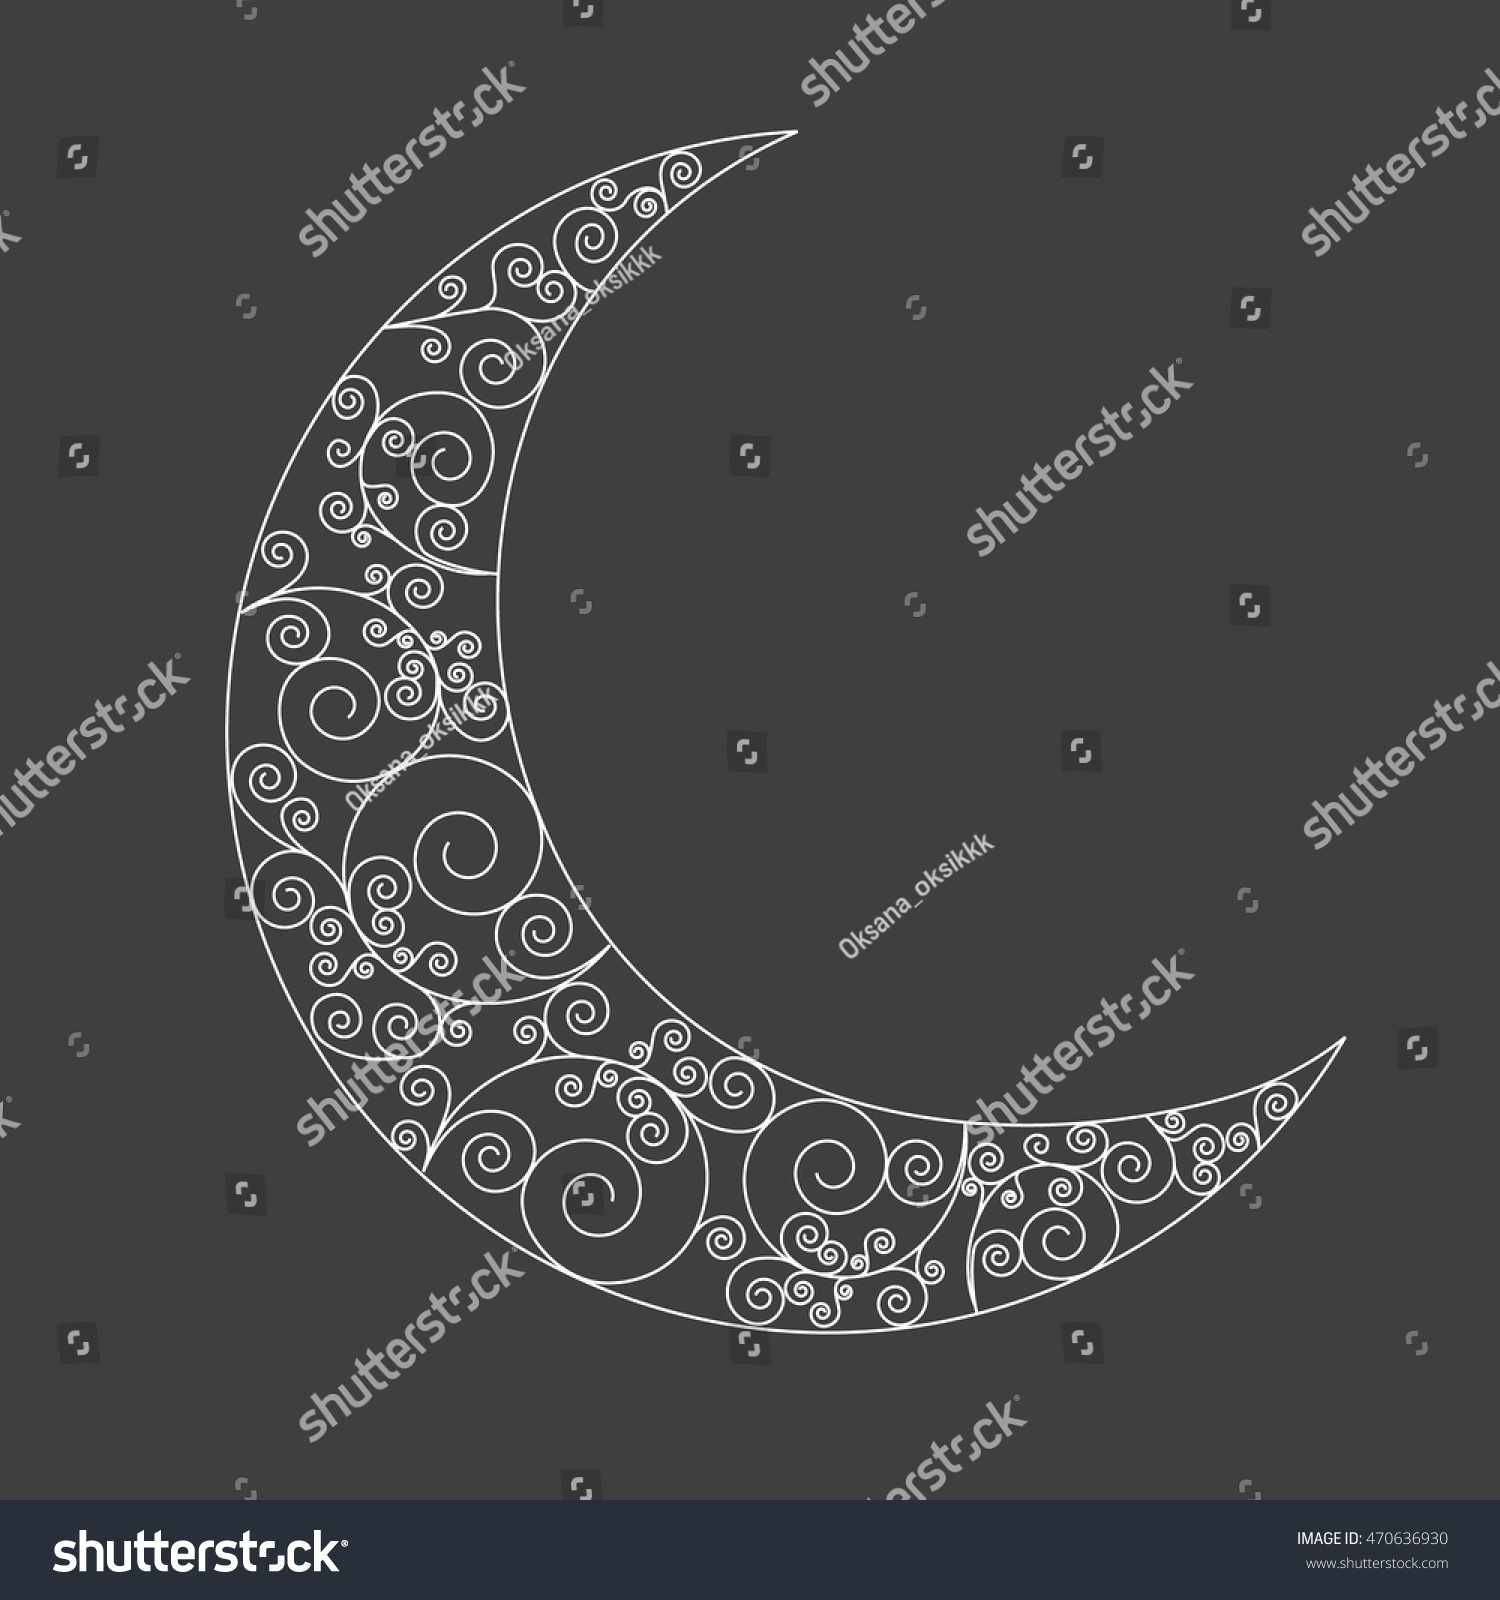 Royalty free decorated swirl crescent moon symbol 470636930 decorated swirl crescent moon symbol white moon icon on dark background can be used biocorpaavc Gallery